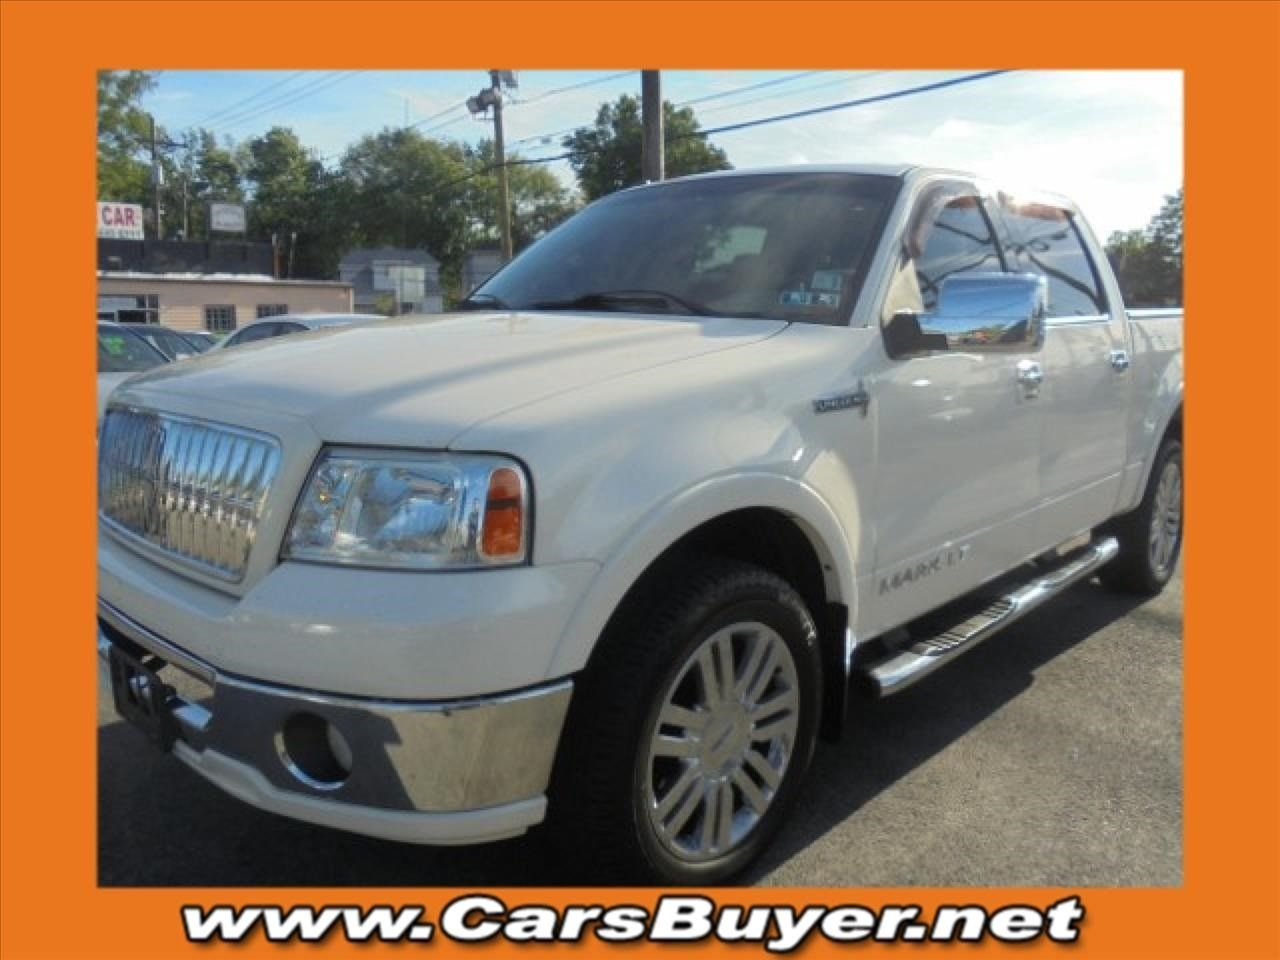 Cars for sale used 2008 lincoln mark lt in 4x4 east lodi nj